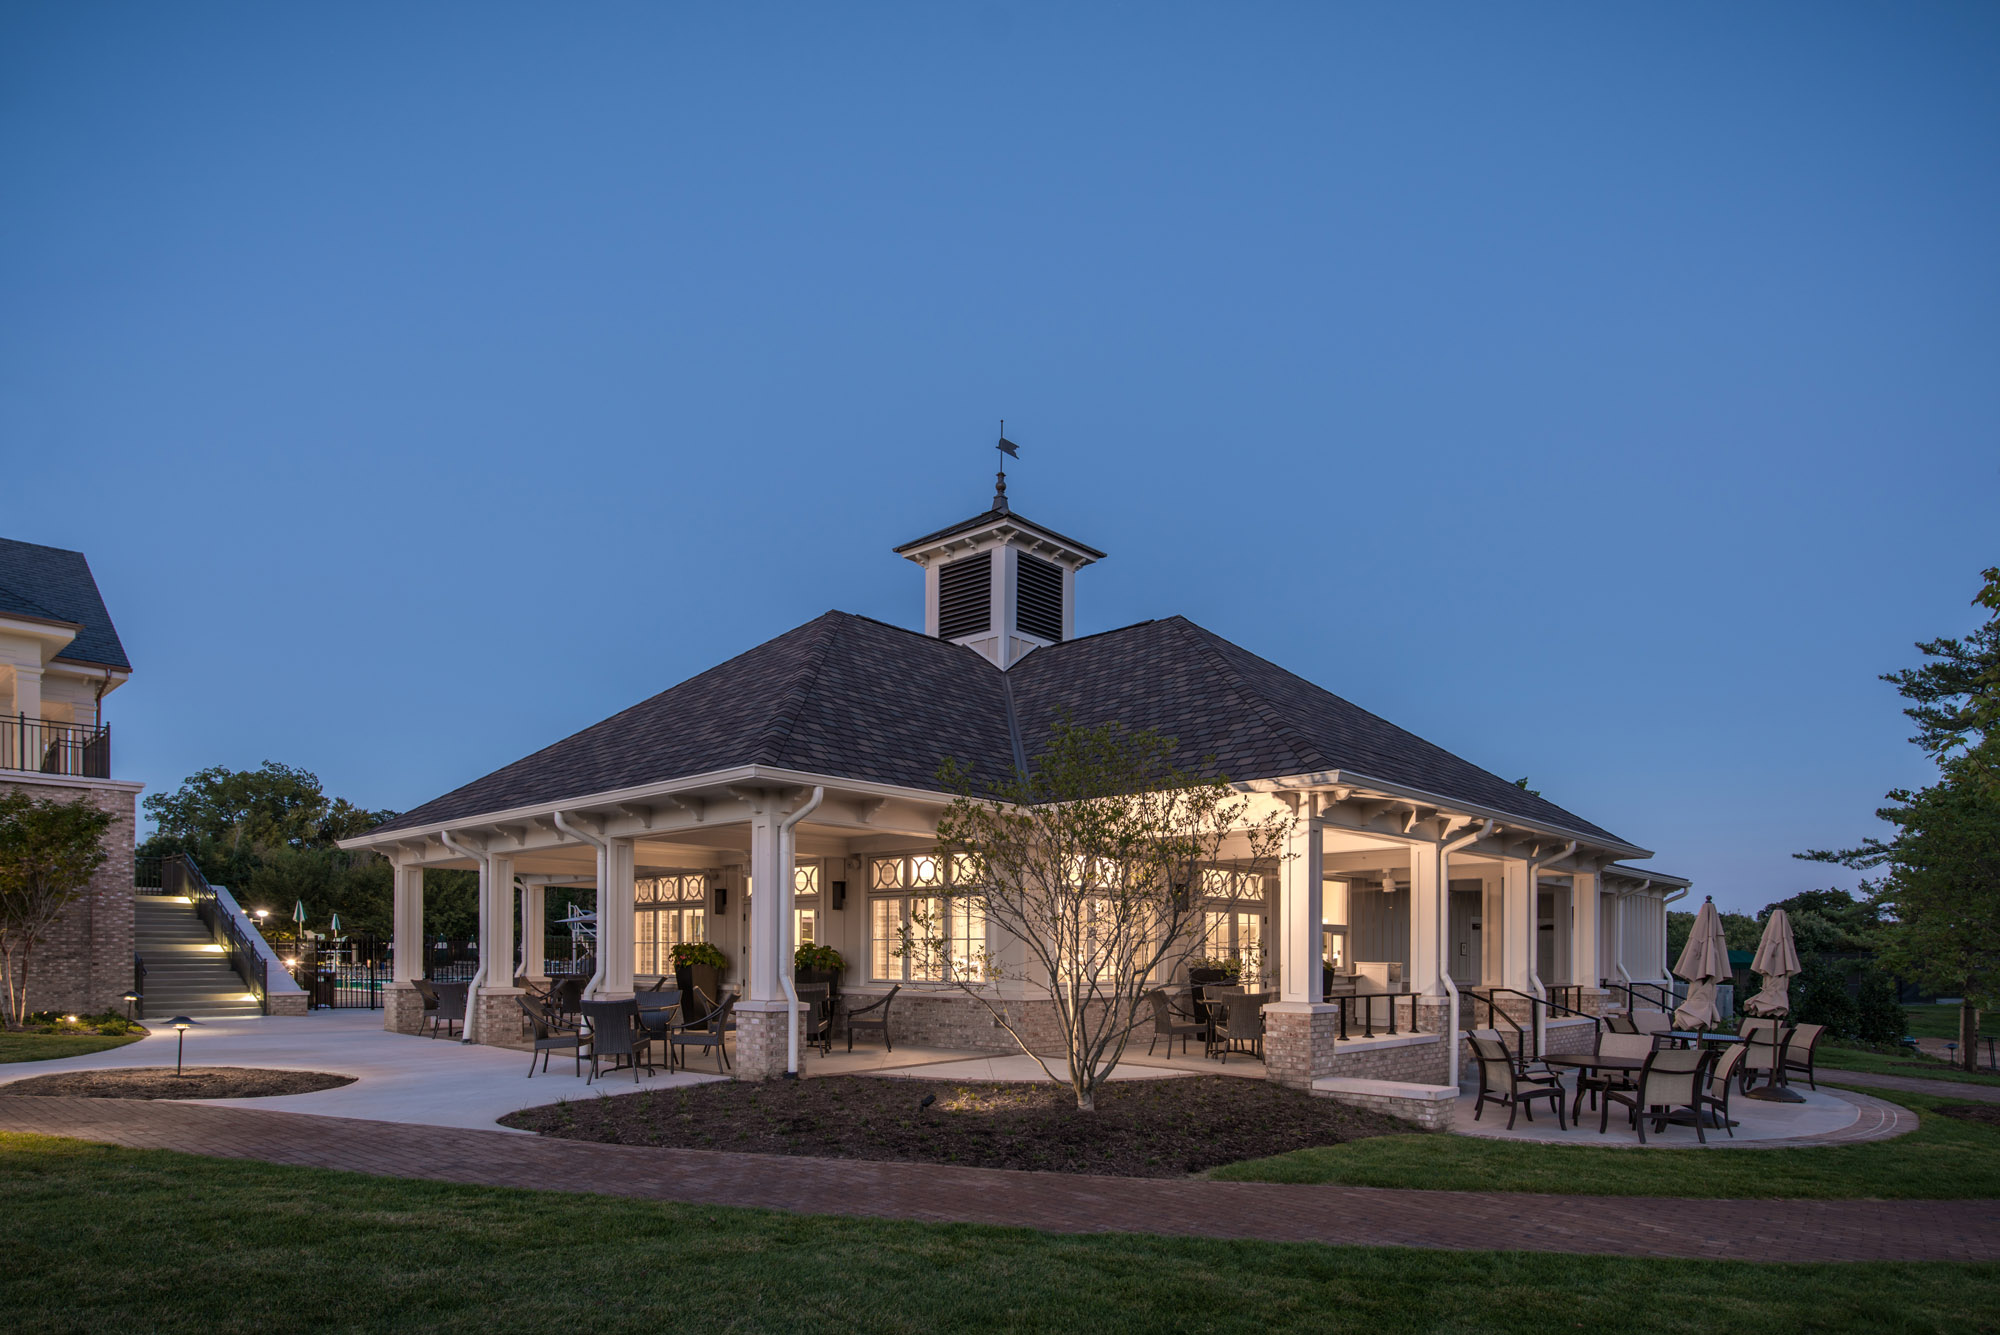 Woodmont Country Club Exterior Image203571.jpg